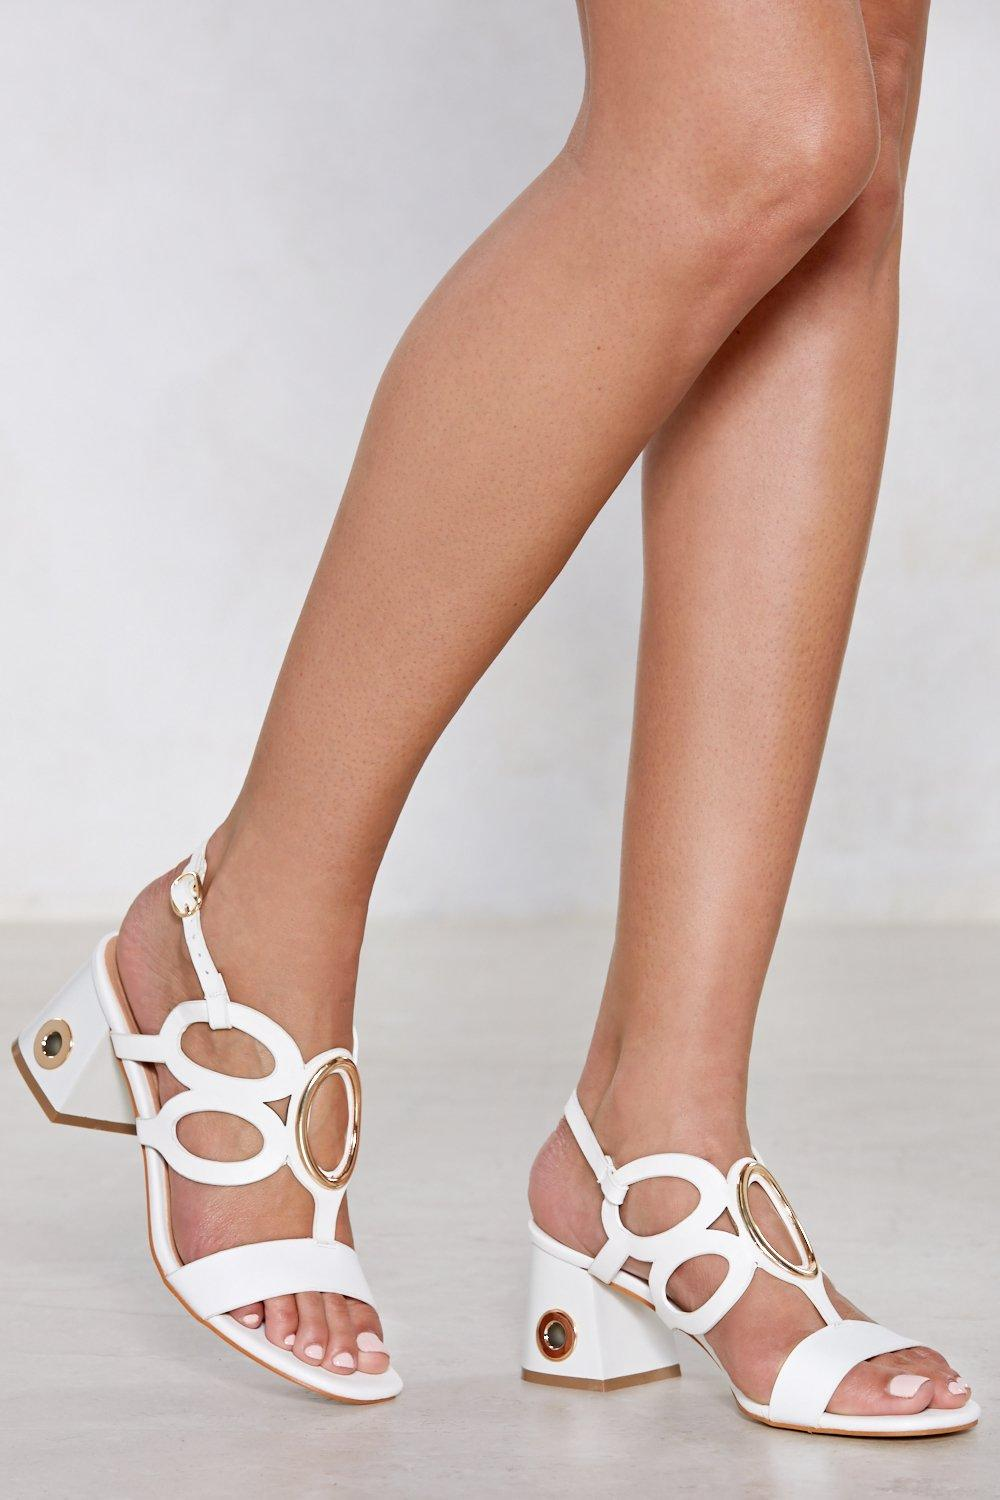 new arrival cheap price The Holy of Holies Cut-Out Sandal free shipping manchester great sale discount newest outlet pay with paypal pCn6S